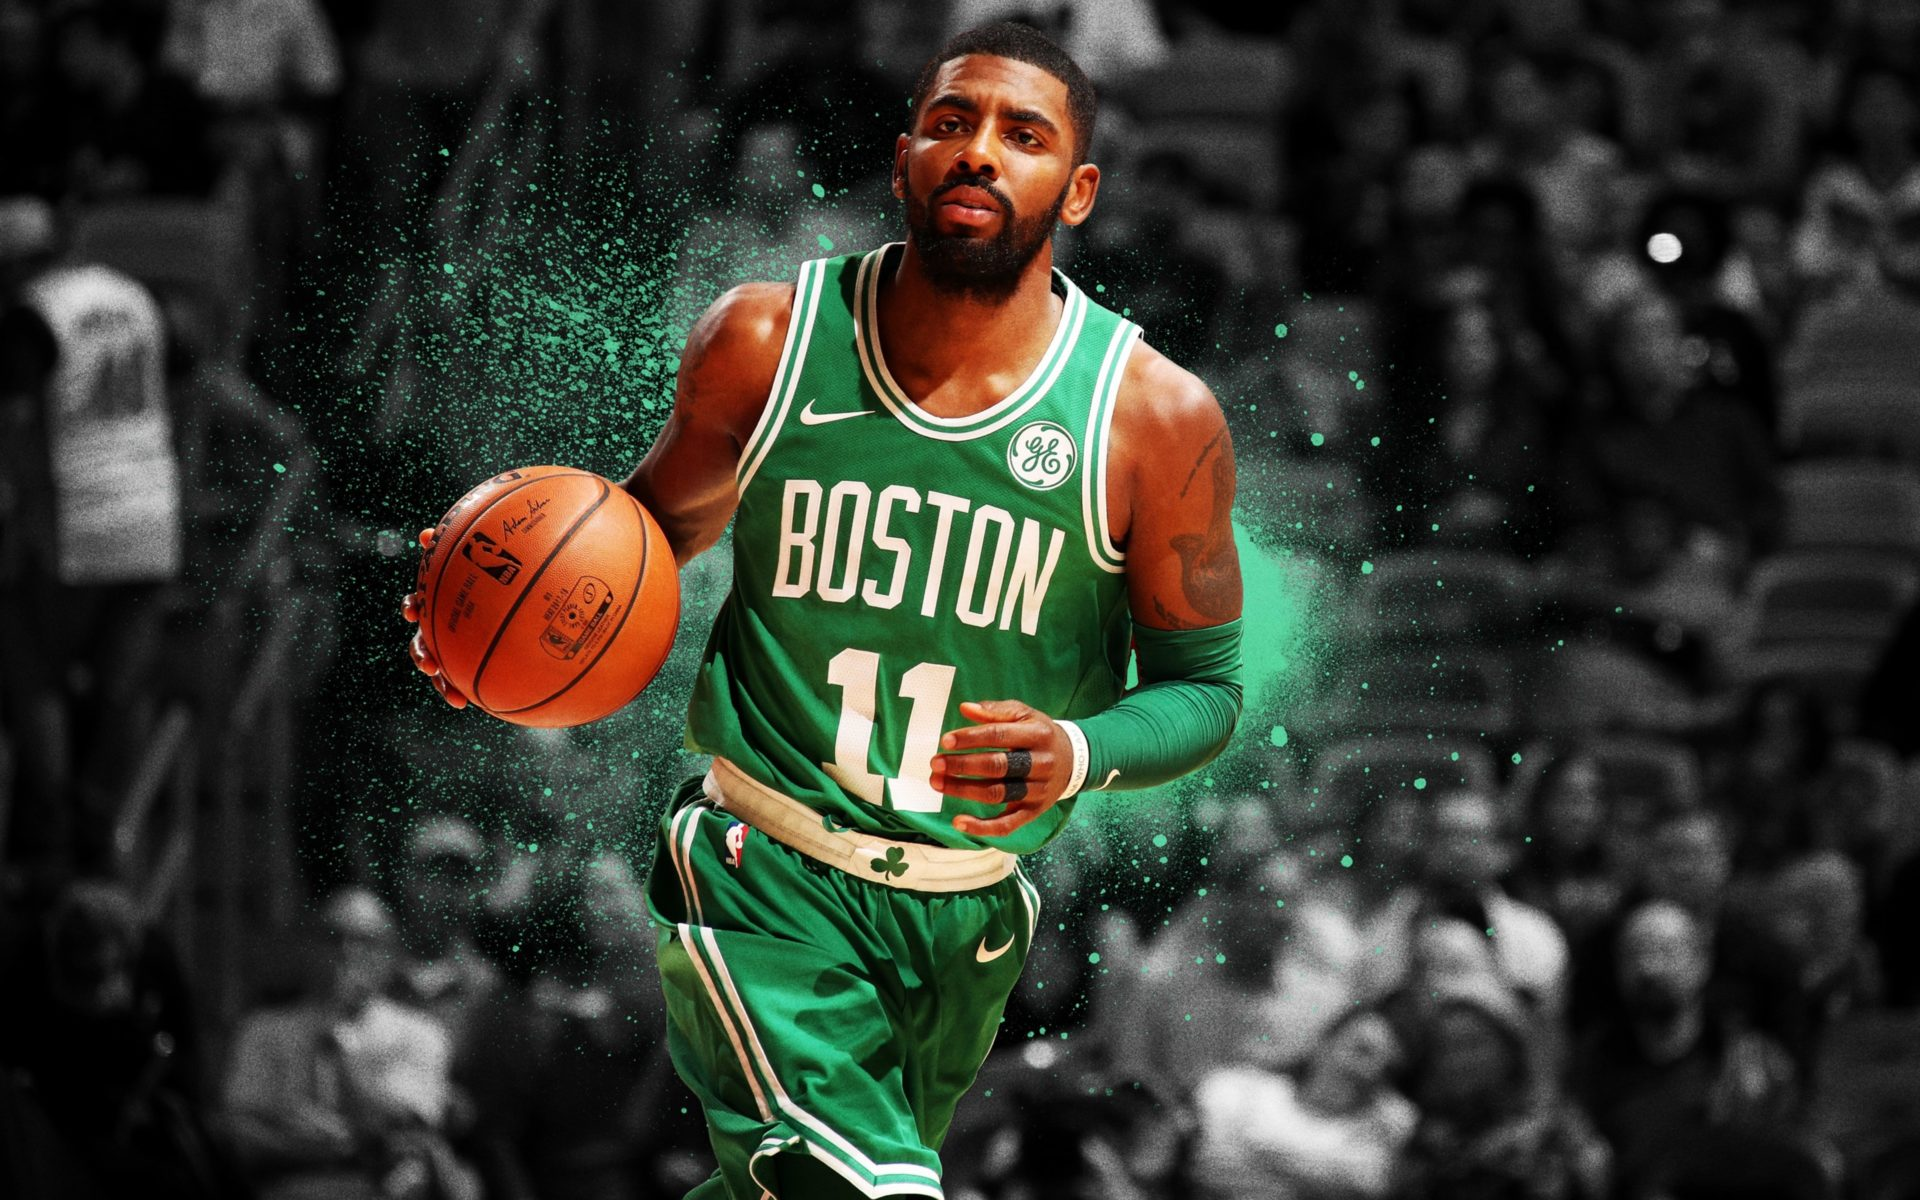 Kyrie Irving Nba Hd Wallpaper Theme Kyrie Irving Wallpaper